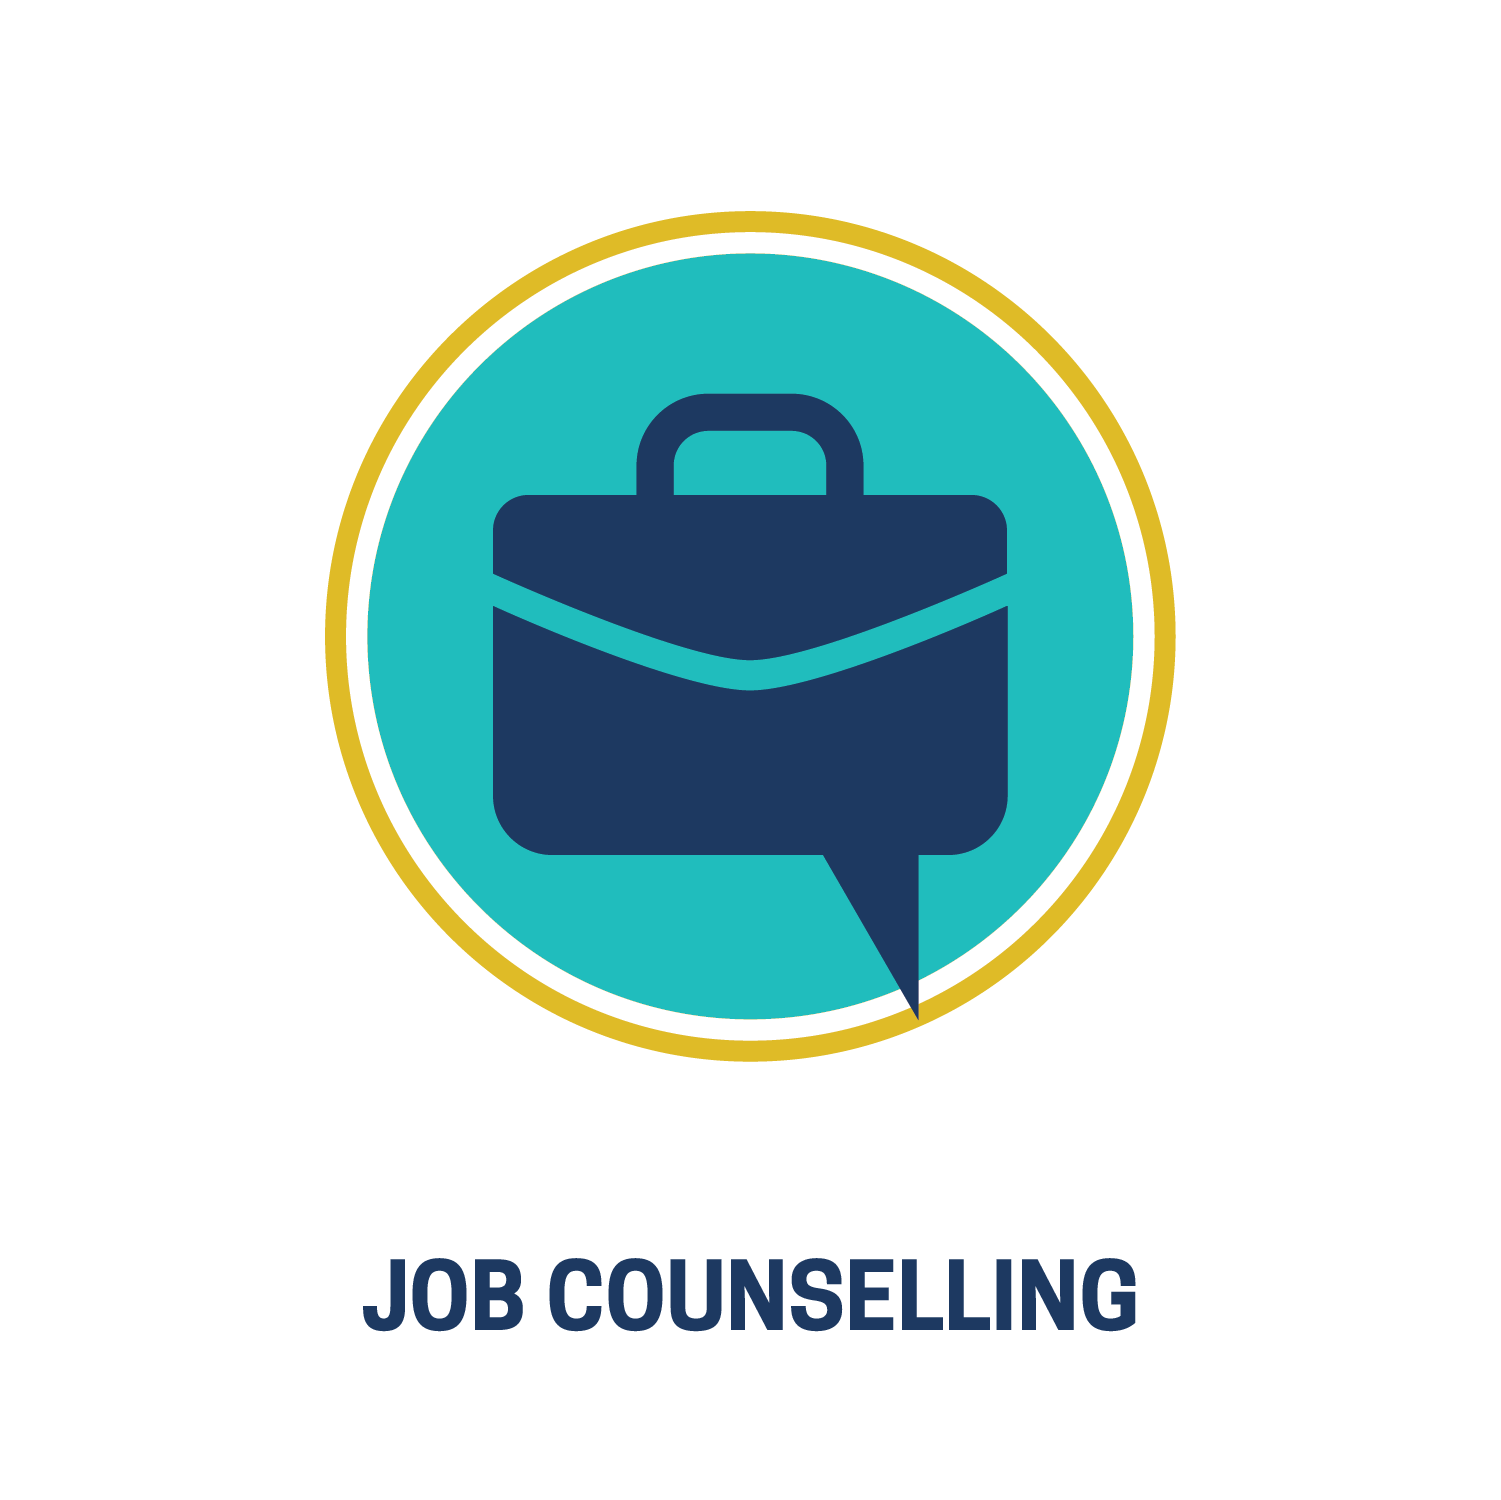 Icons_Job Counselling.png